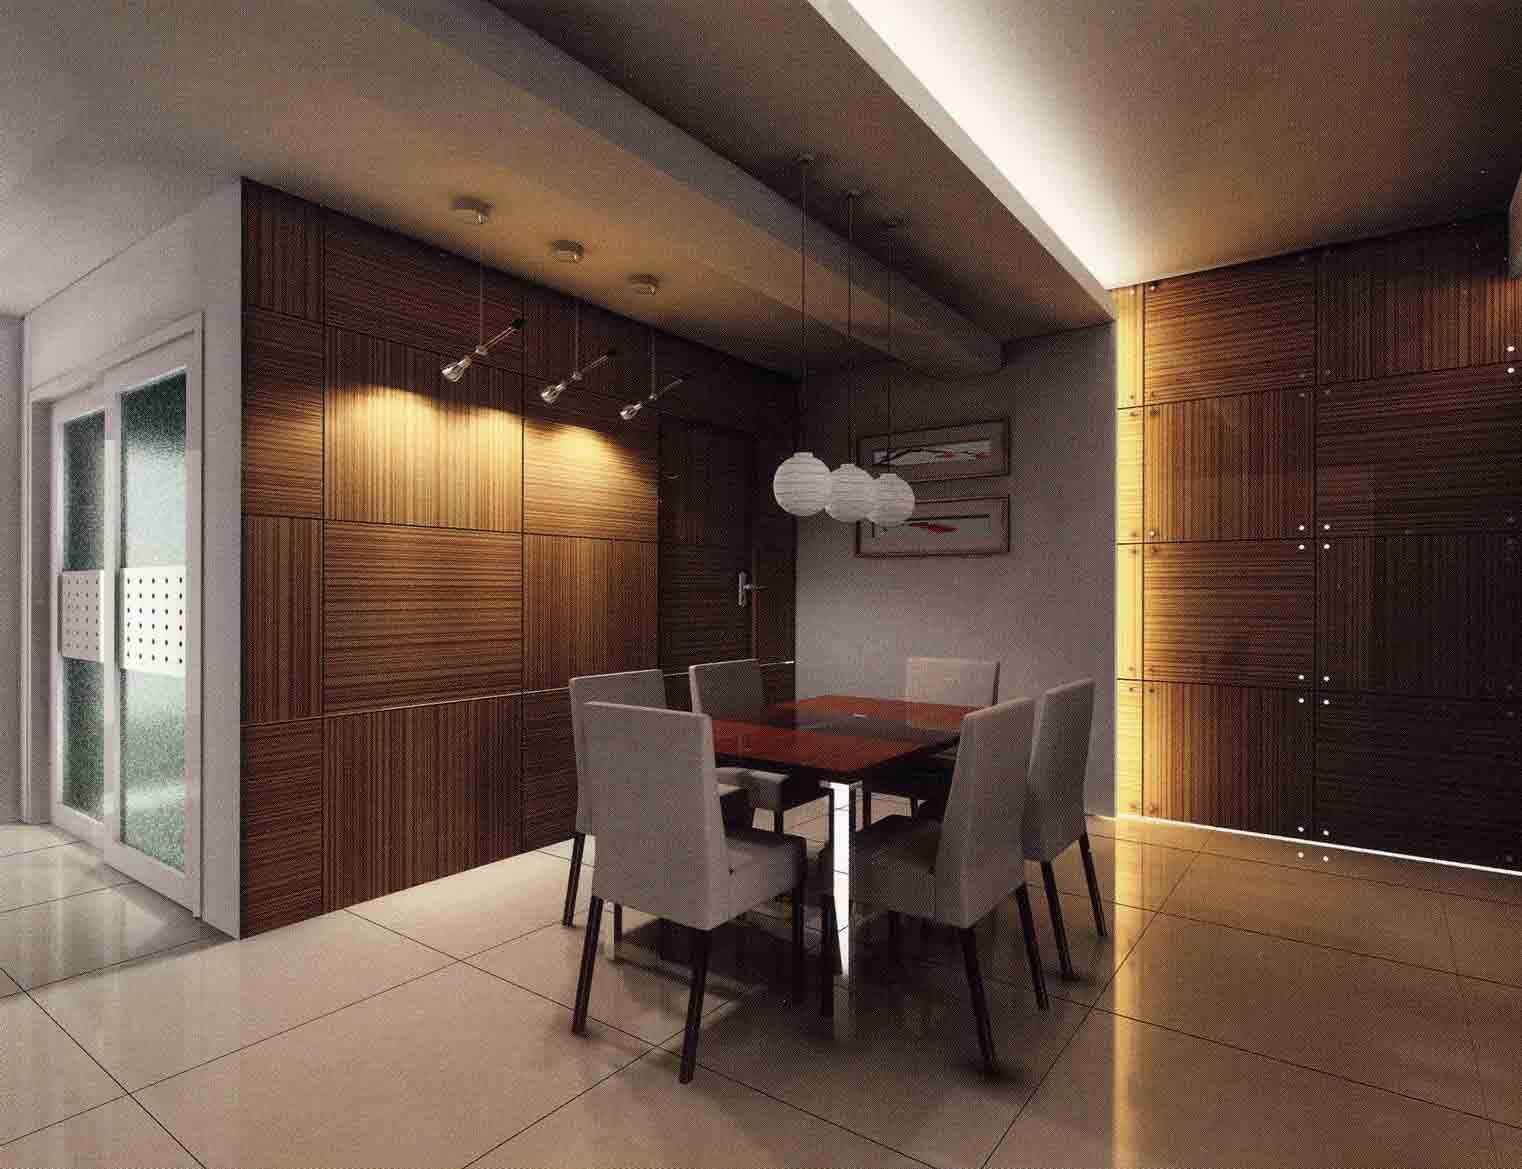 POP Ceiling design for Dining room - GharExpert